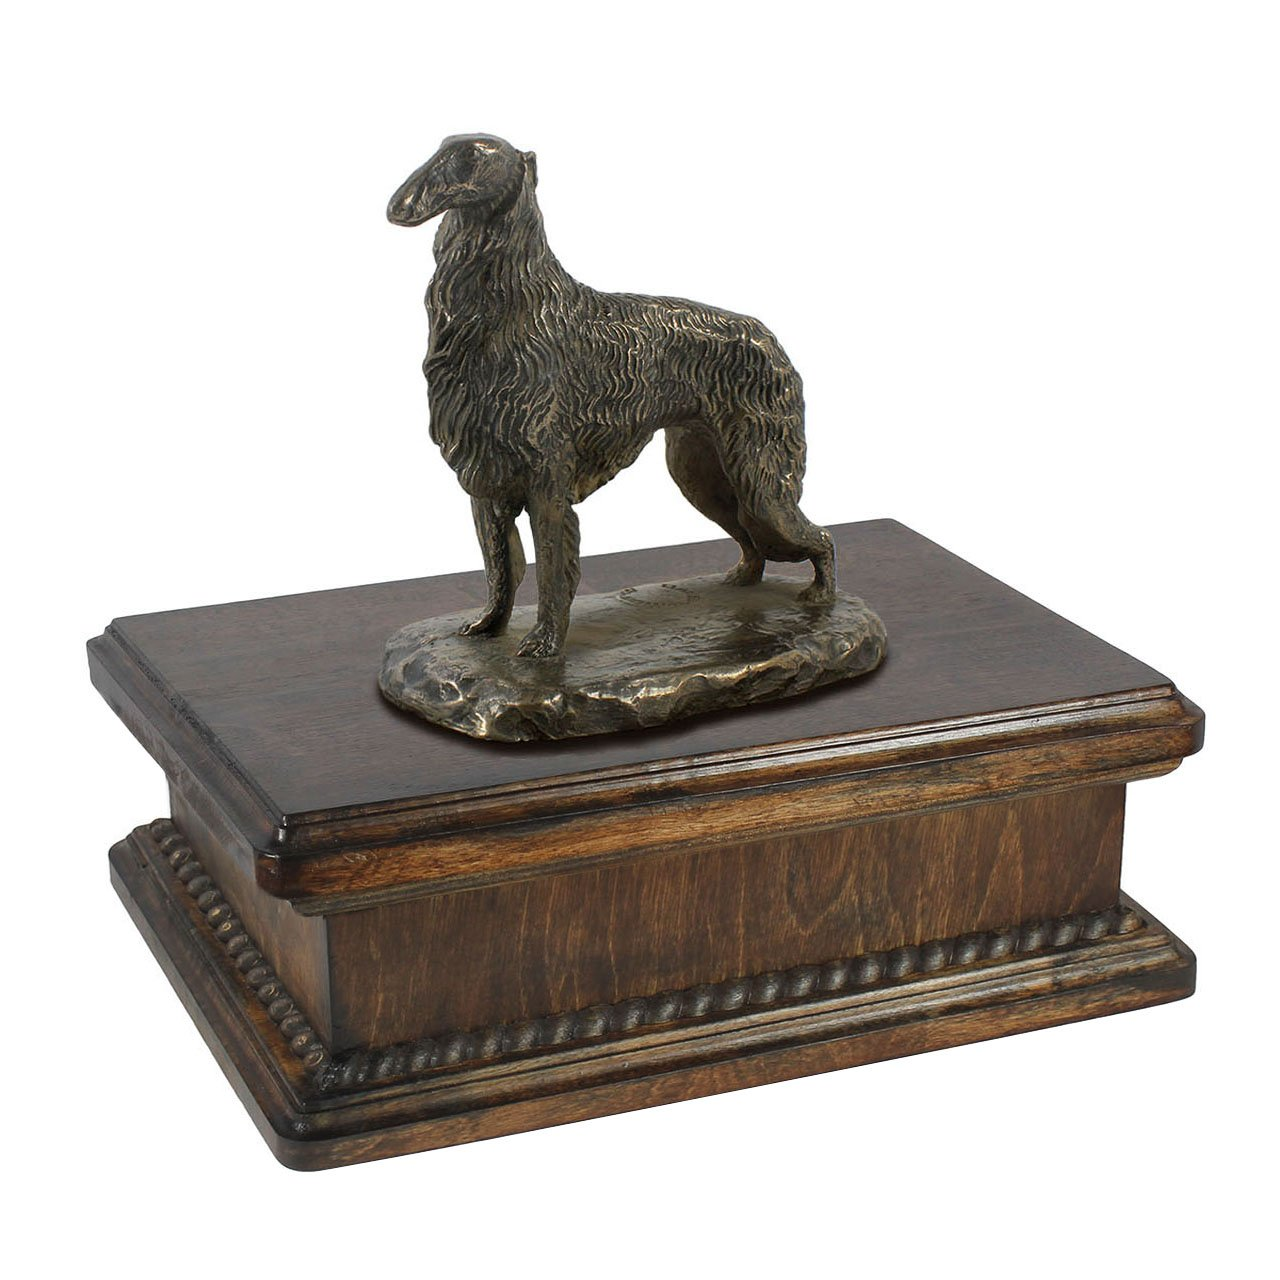 Borzoi standing, memorial, urn for dog's ashes, with dog statue, exclusive, ArtDog